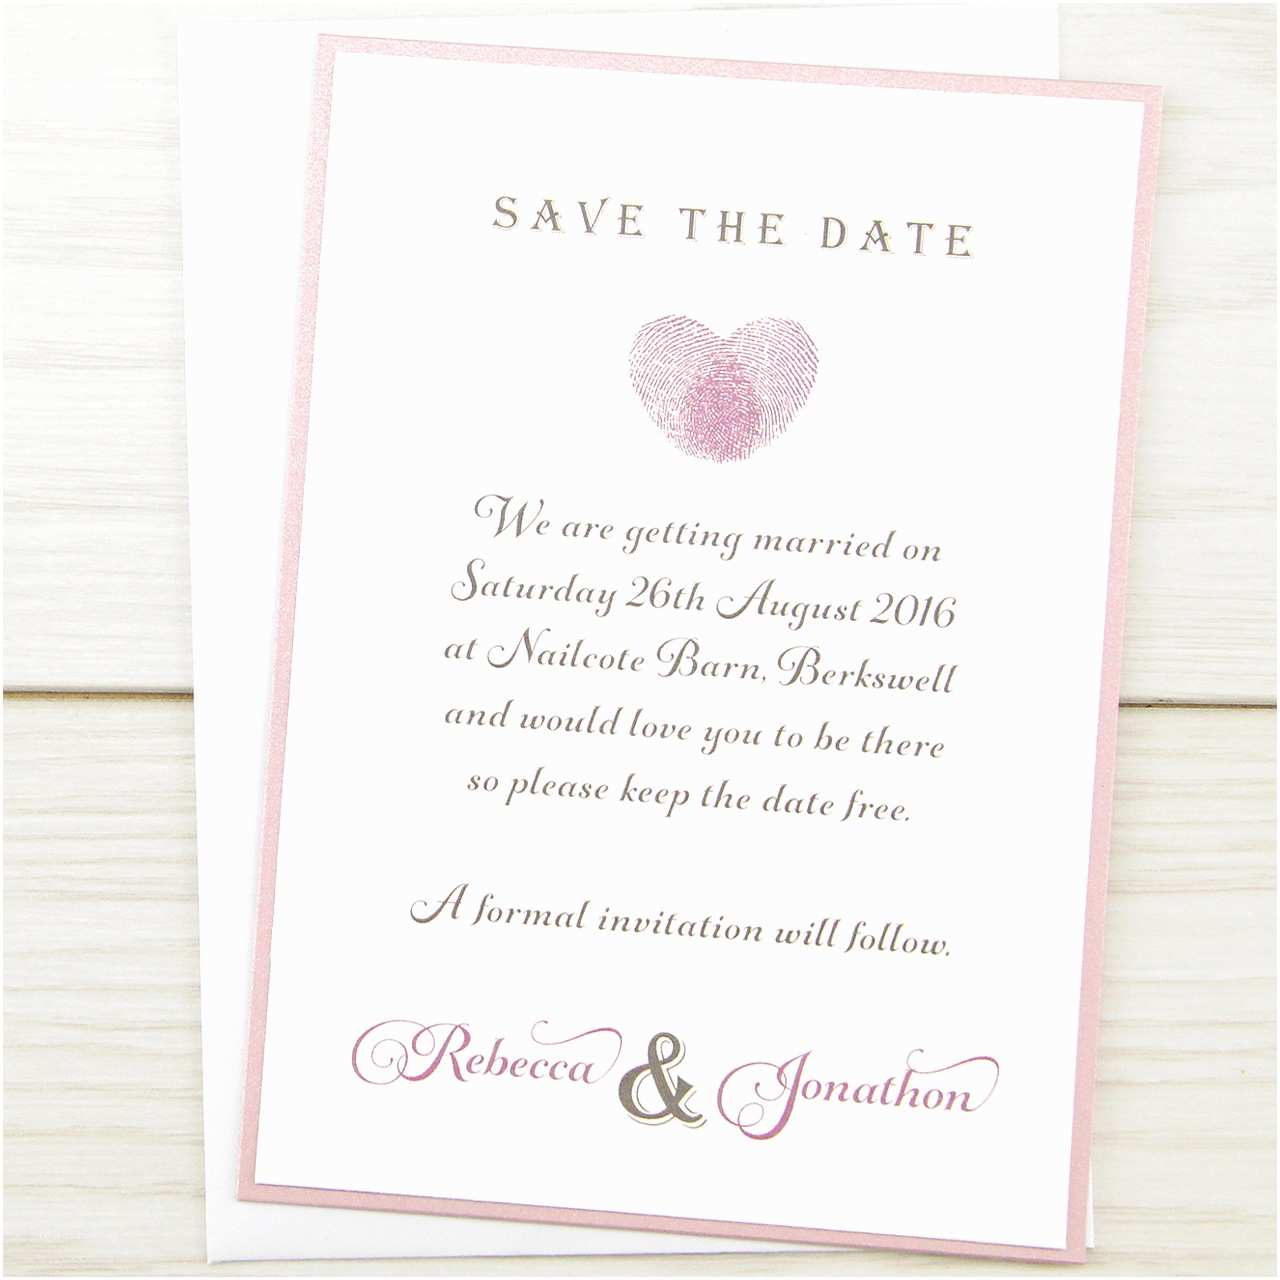 Cheap Wedding Invitations and Save the Dates Packages Thumb Print Save the Date